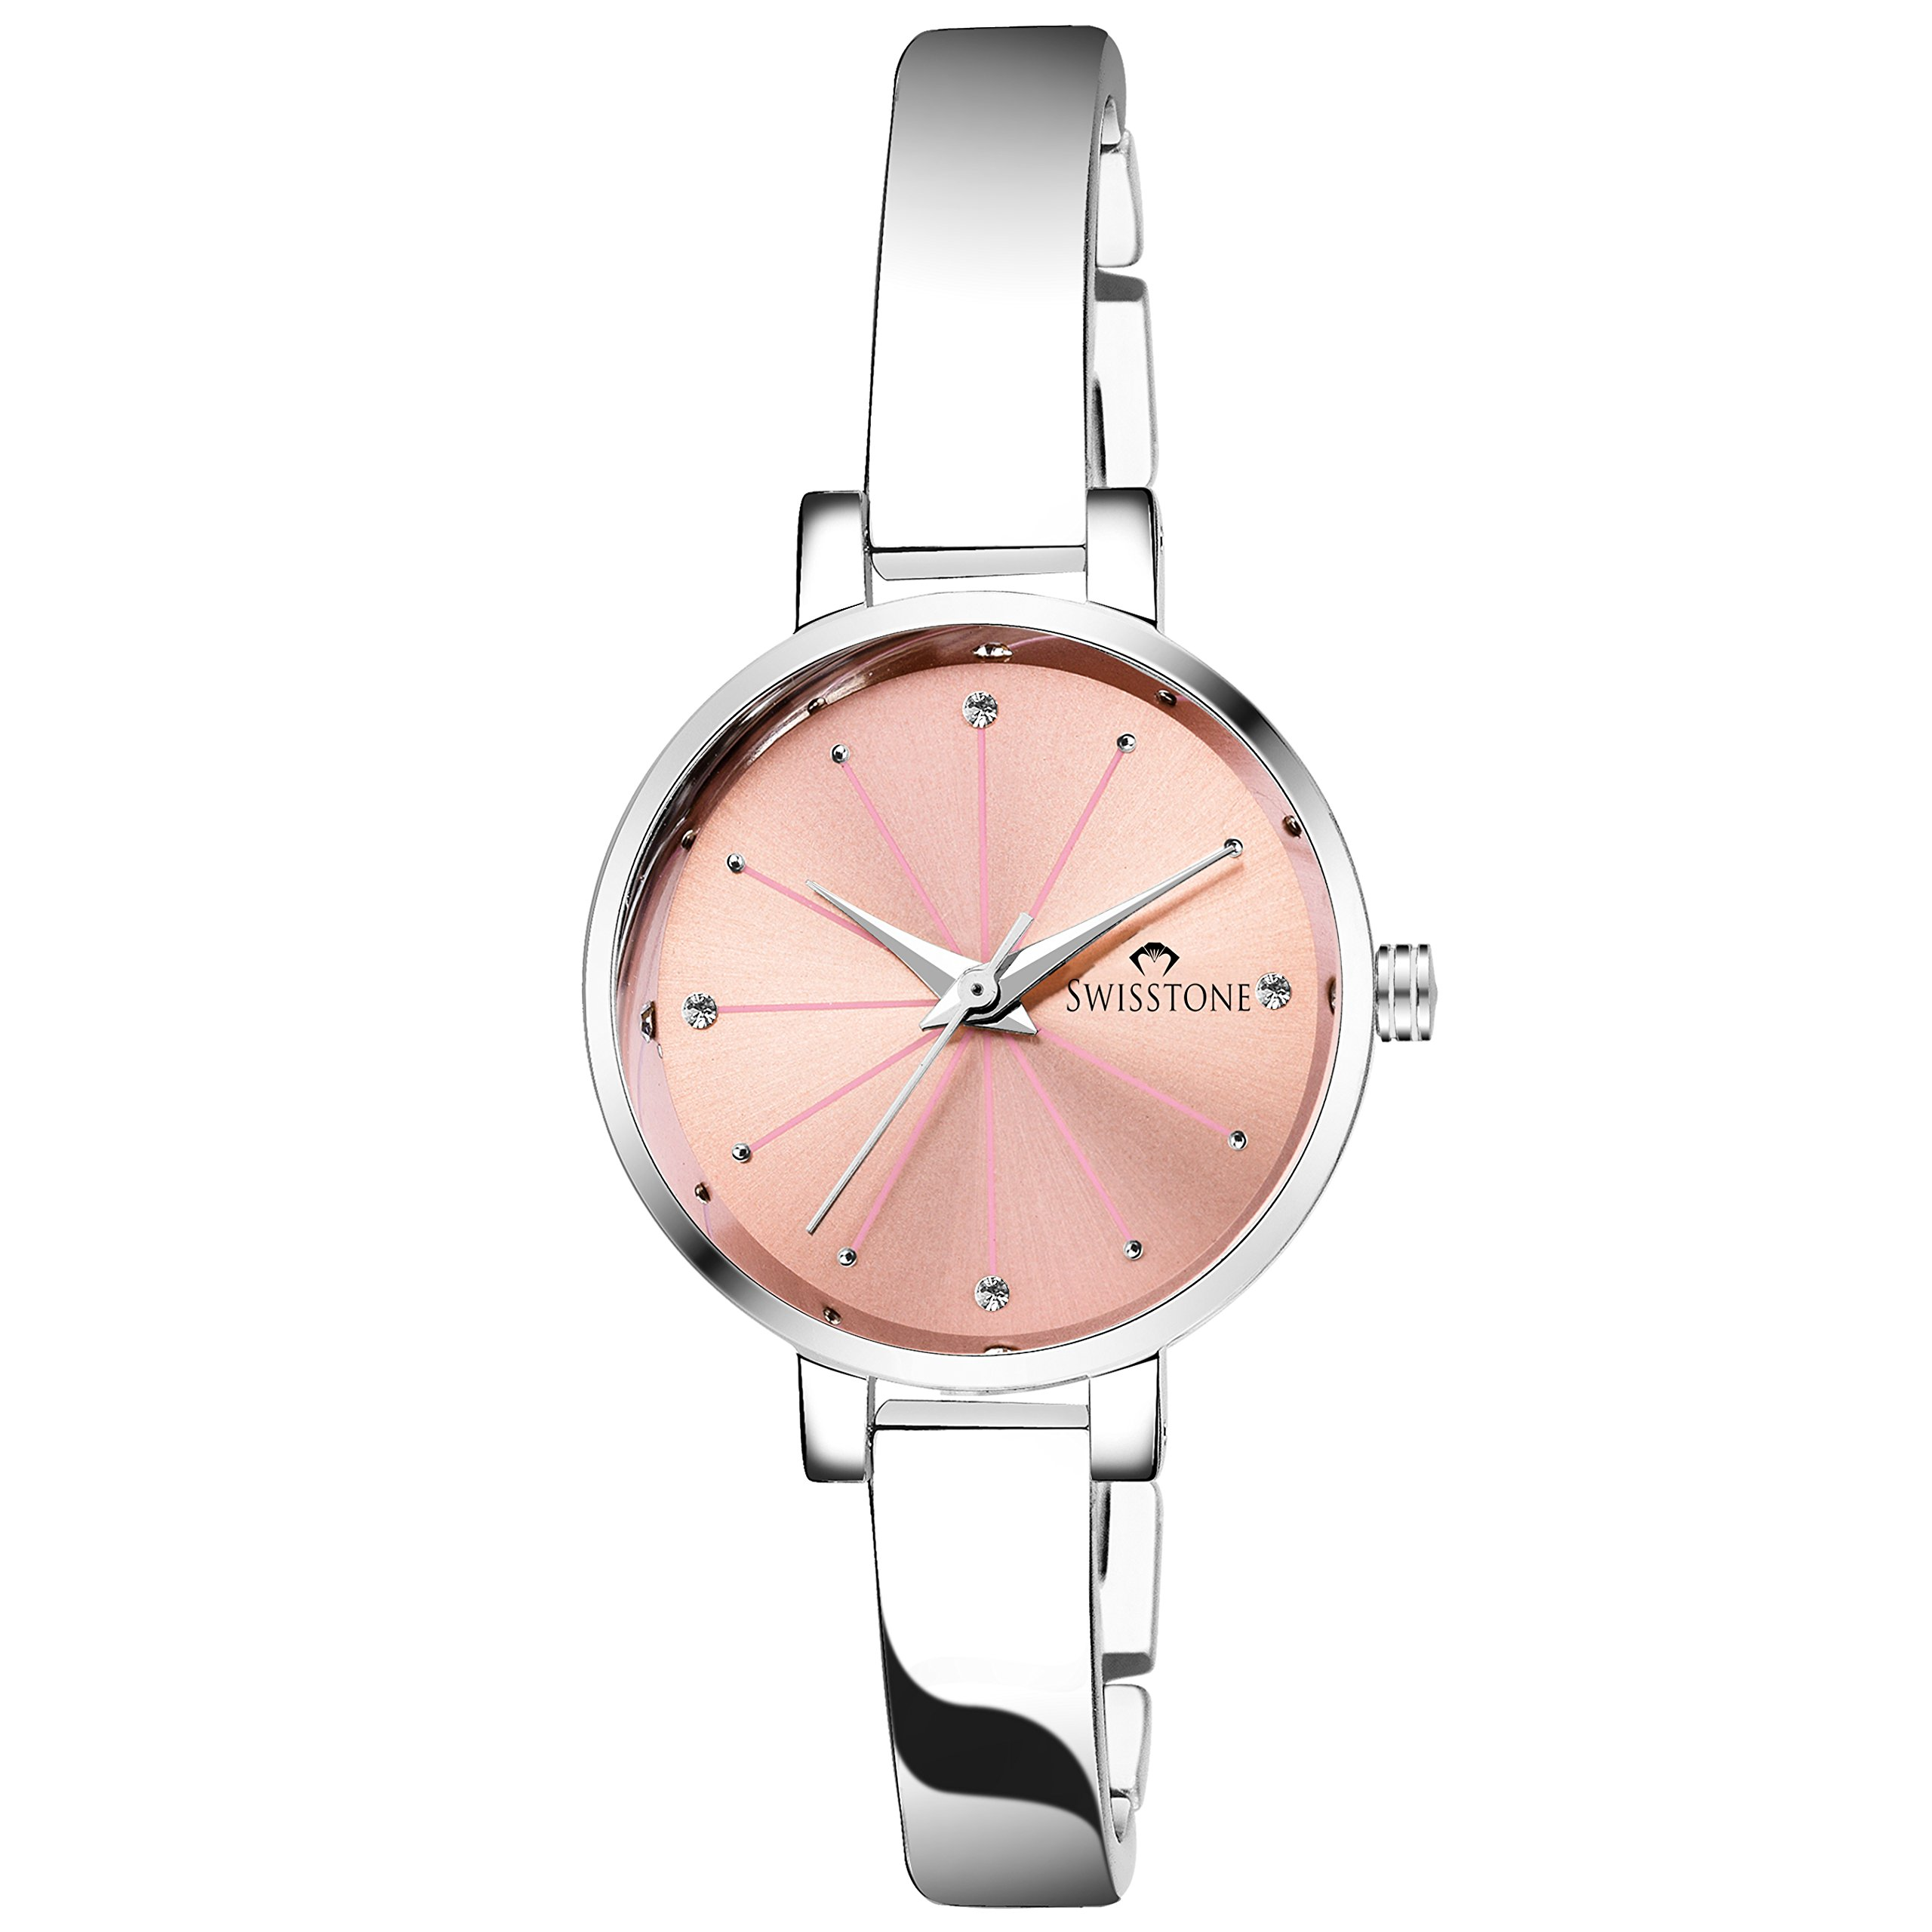 SWISSTONE Analogue Pink Dial Silver Plated Bracelet Women's Wrist Watch product image